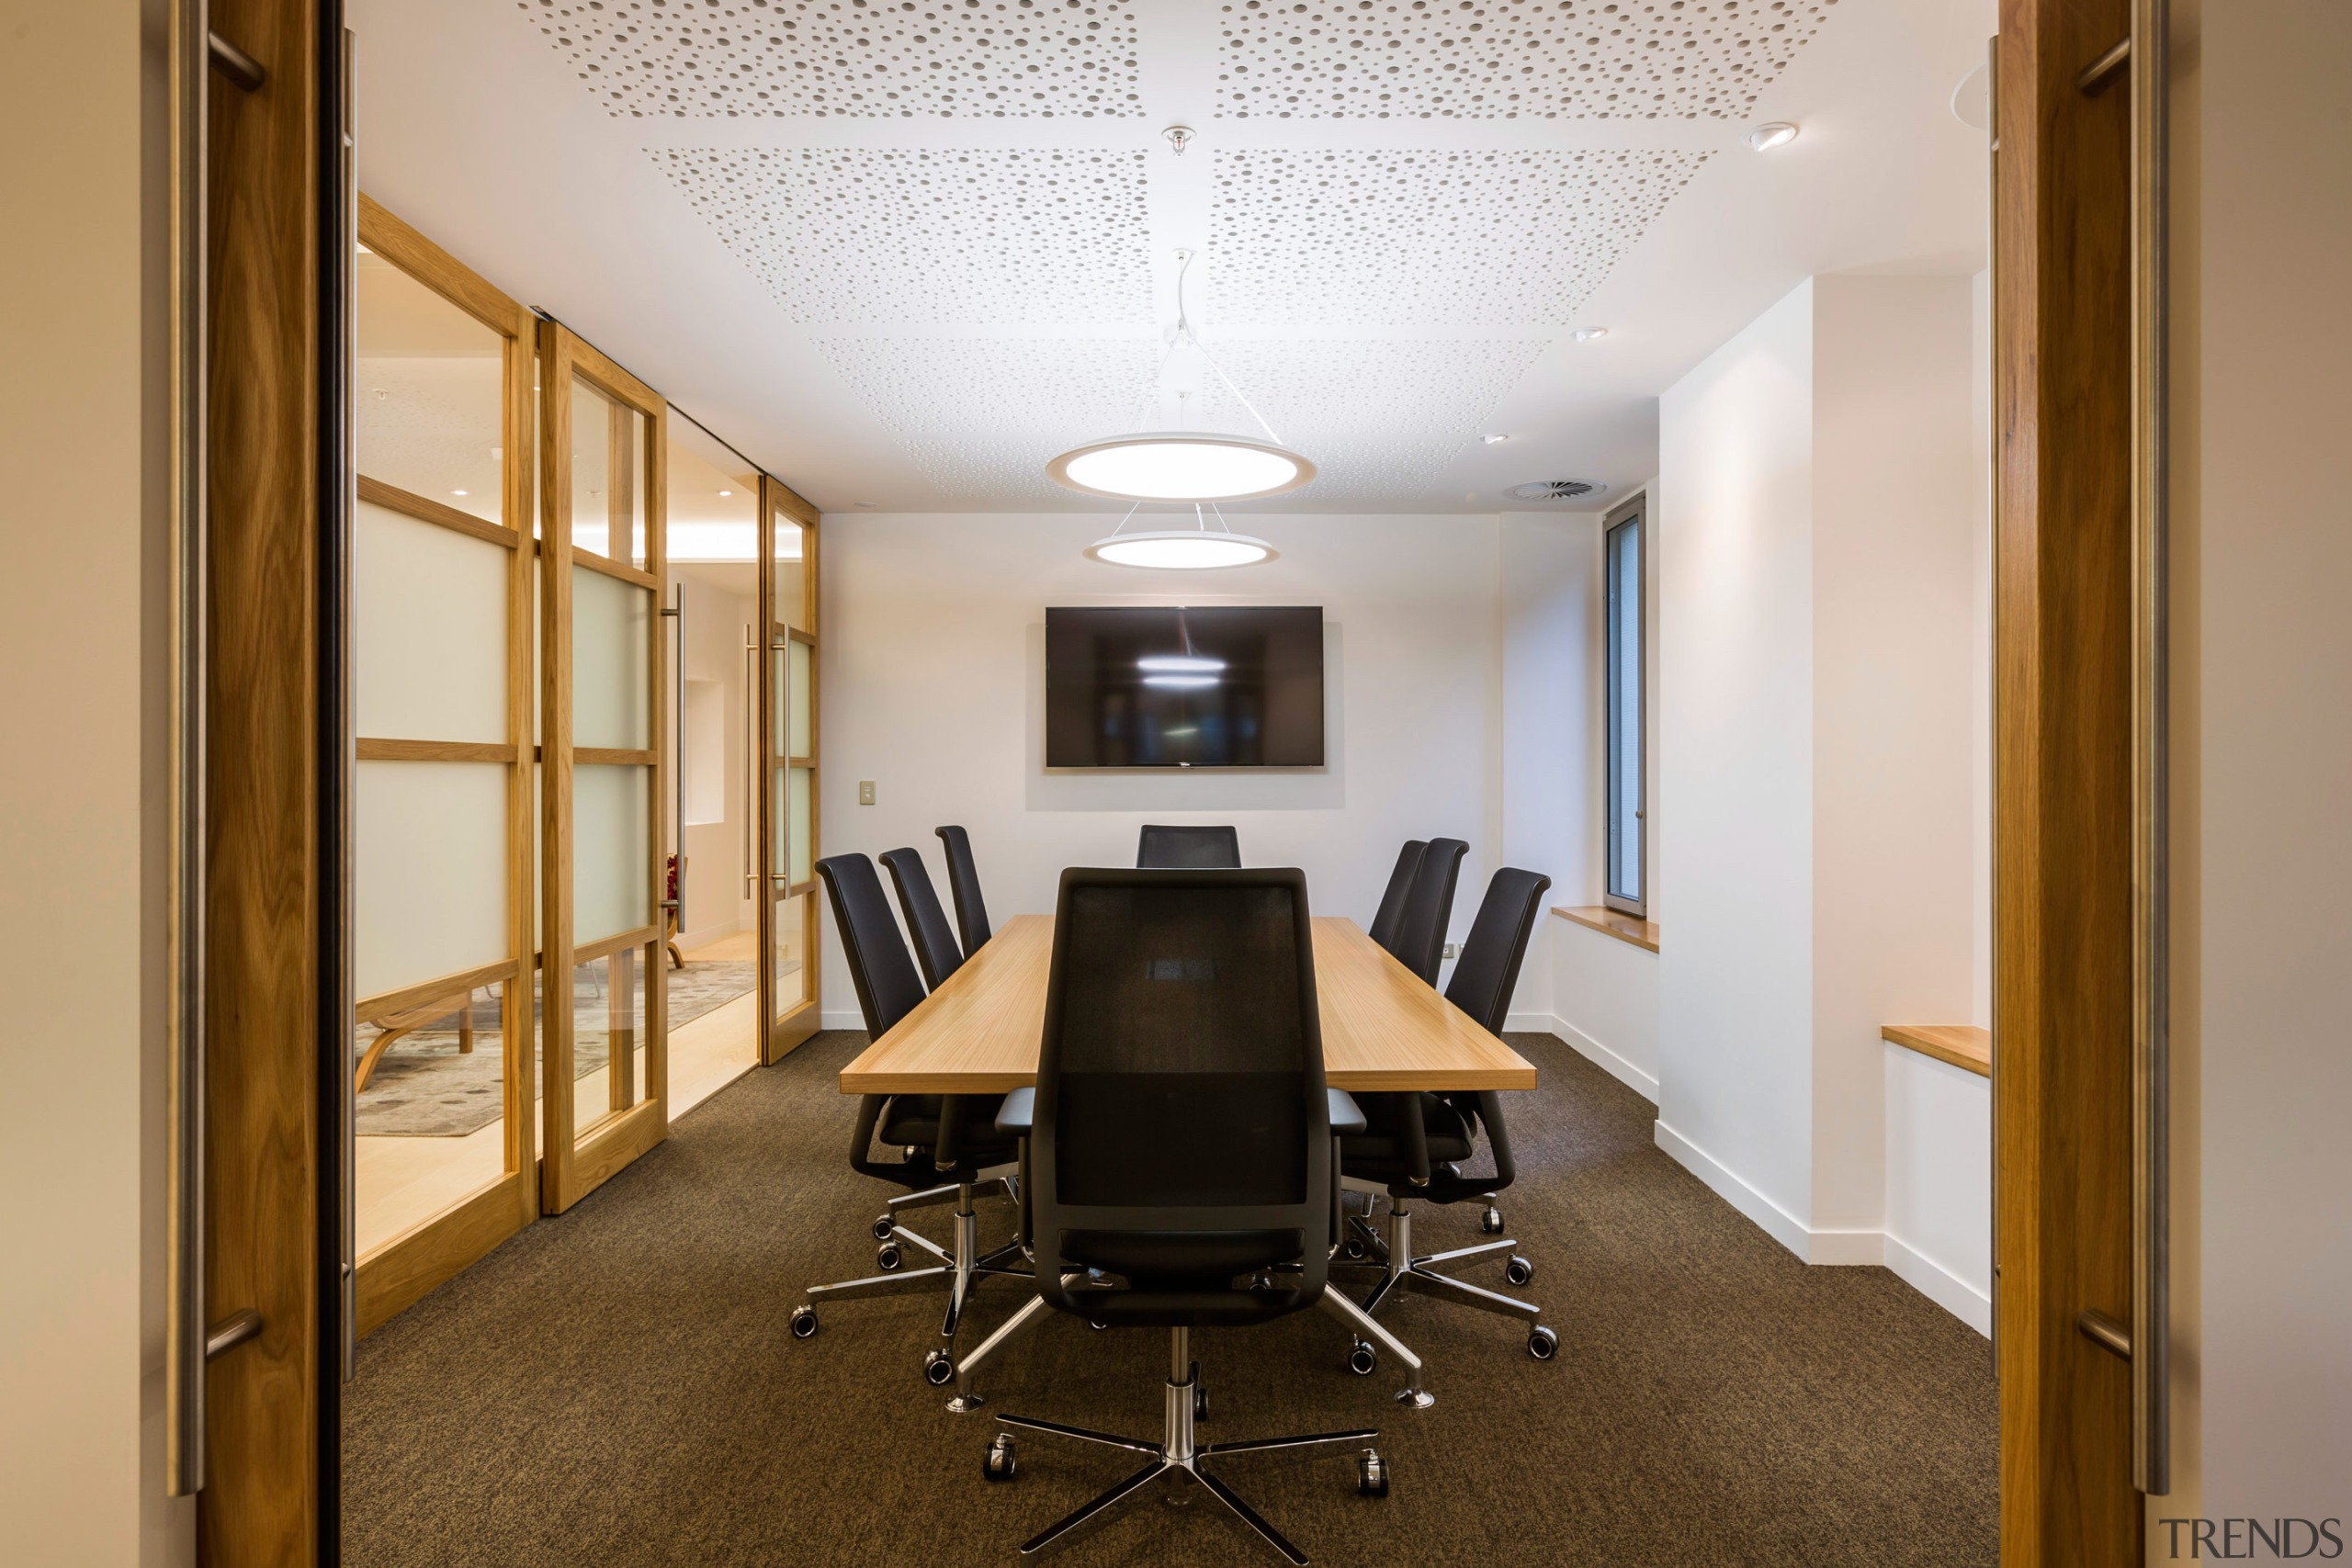 Our clients required a high quality fitout providing ceiling, conference hall, interior design, office, real estate, brown, gray